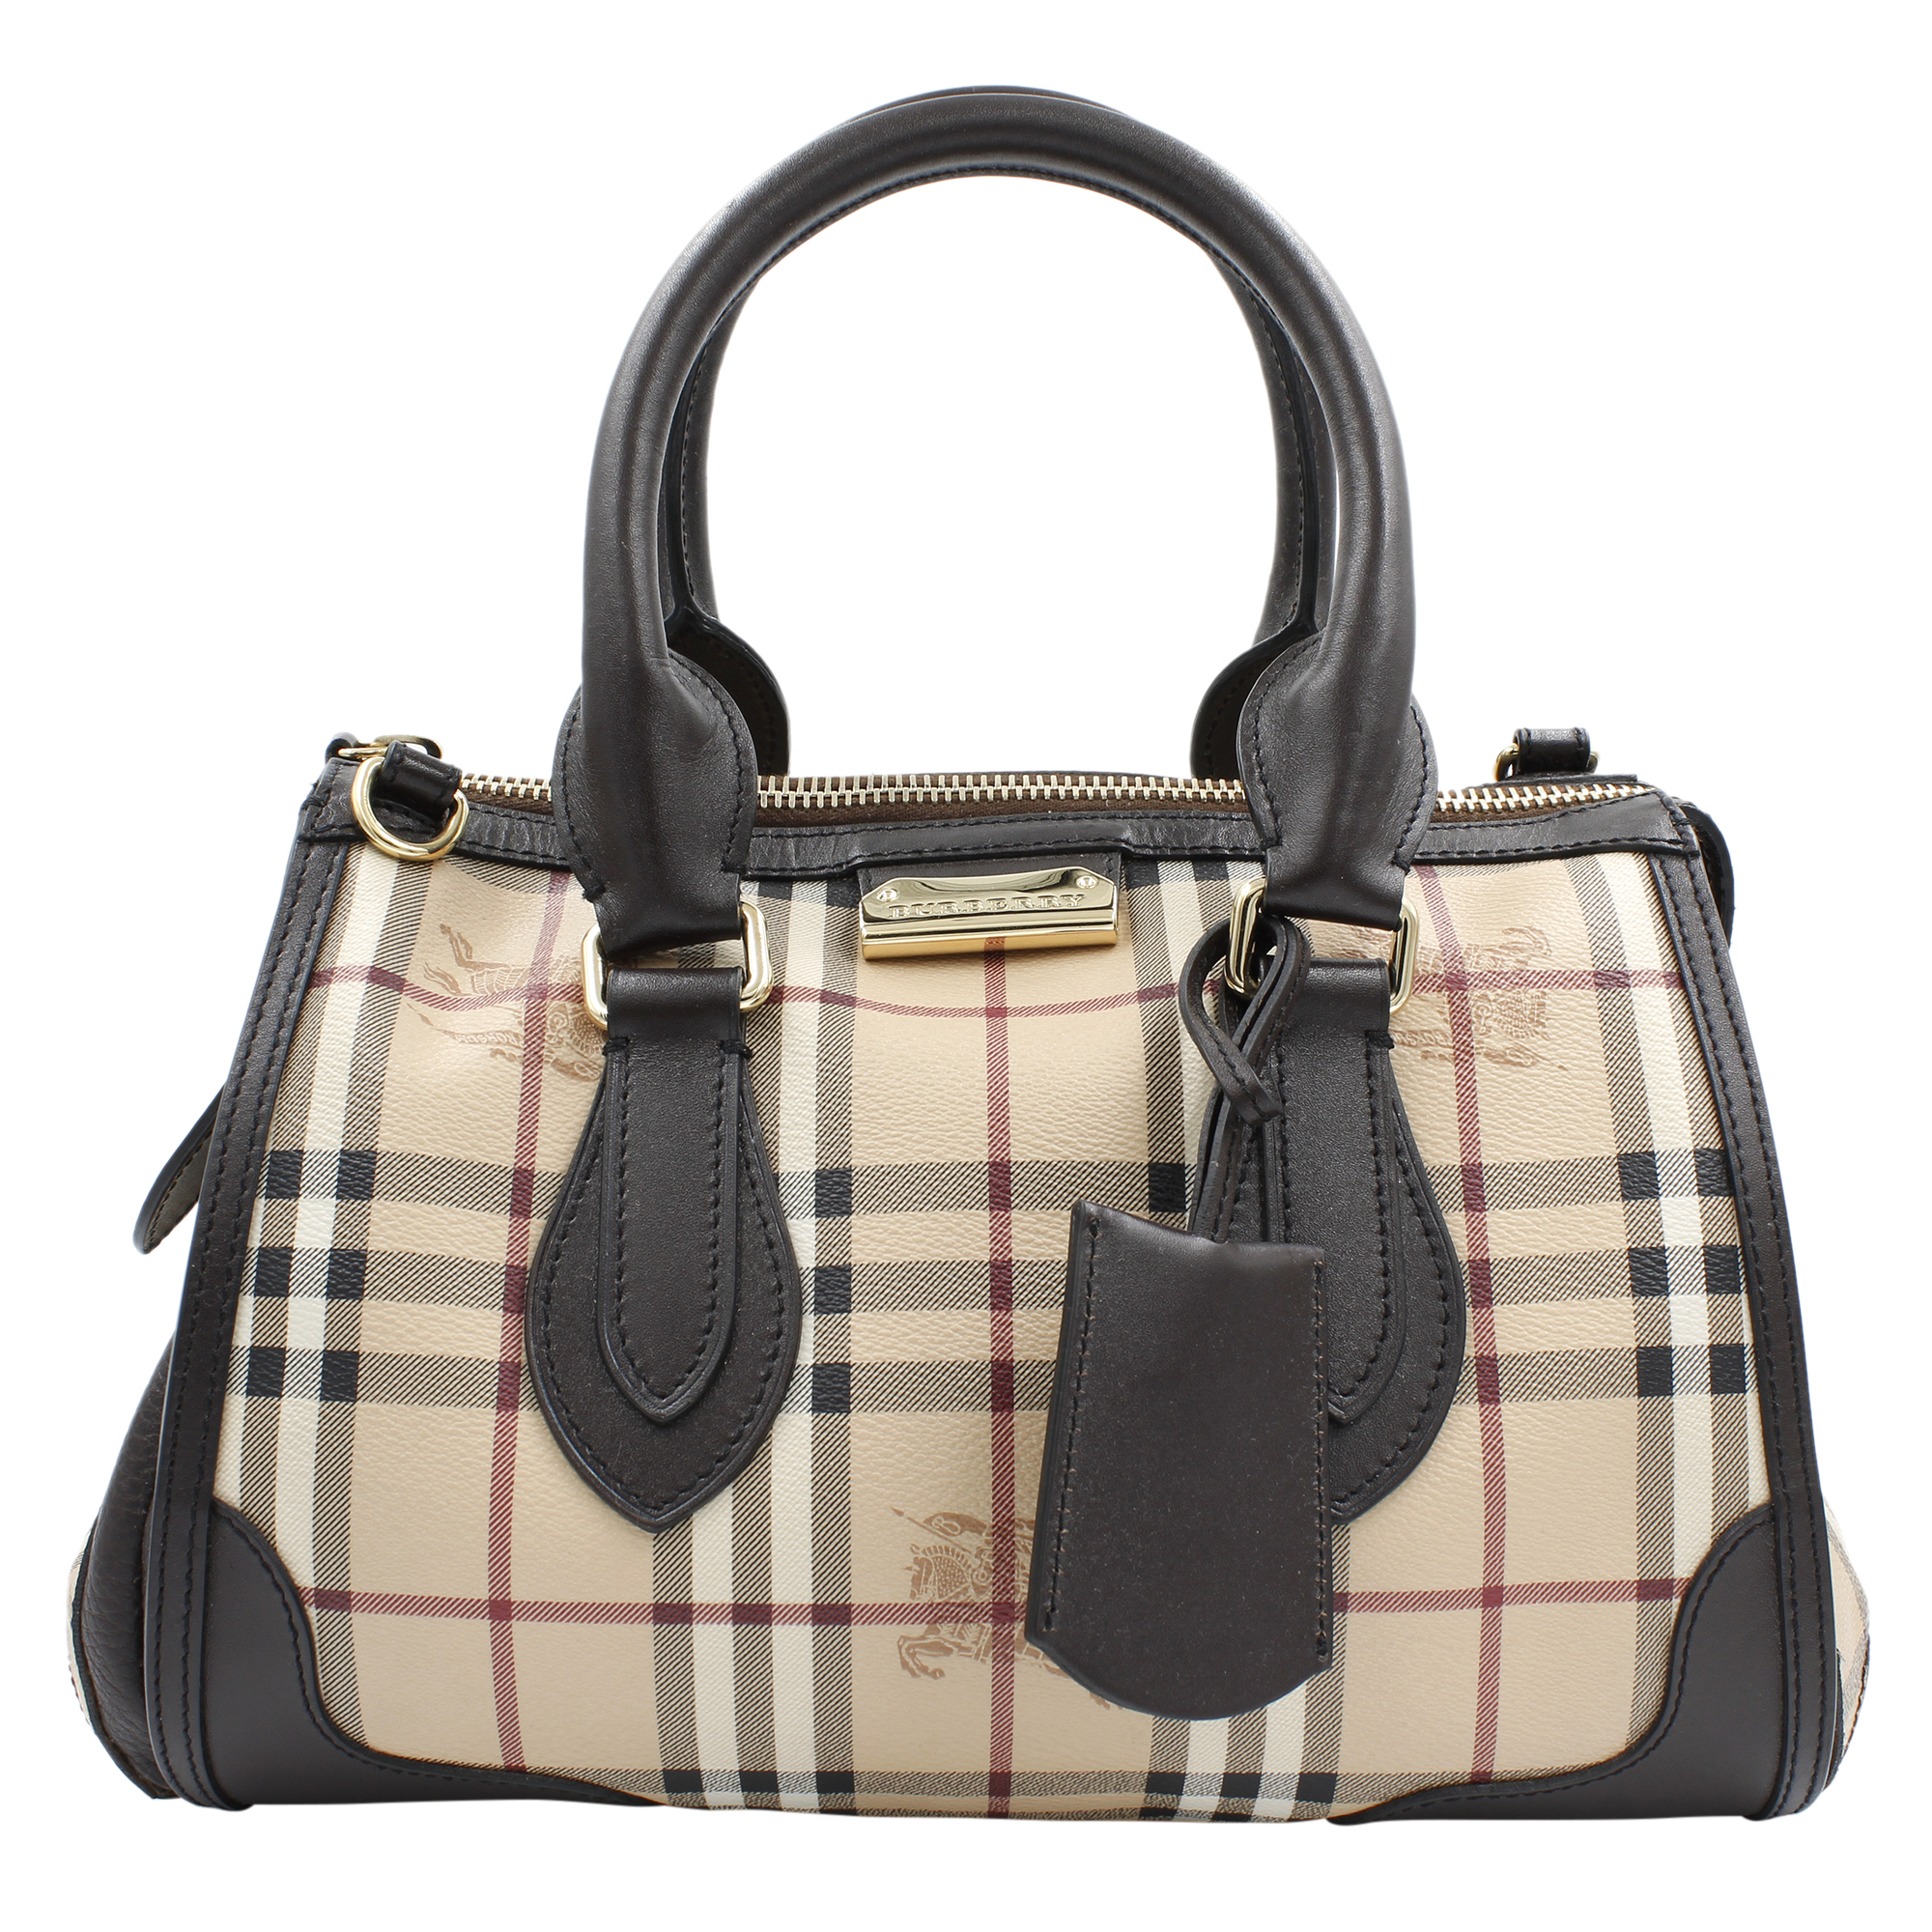 b3d8a70990d2 Burberry 3870759 Gladstone Chocolate Ladies Tote Satchel Bag ...